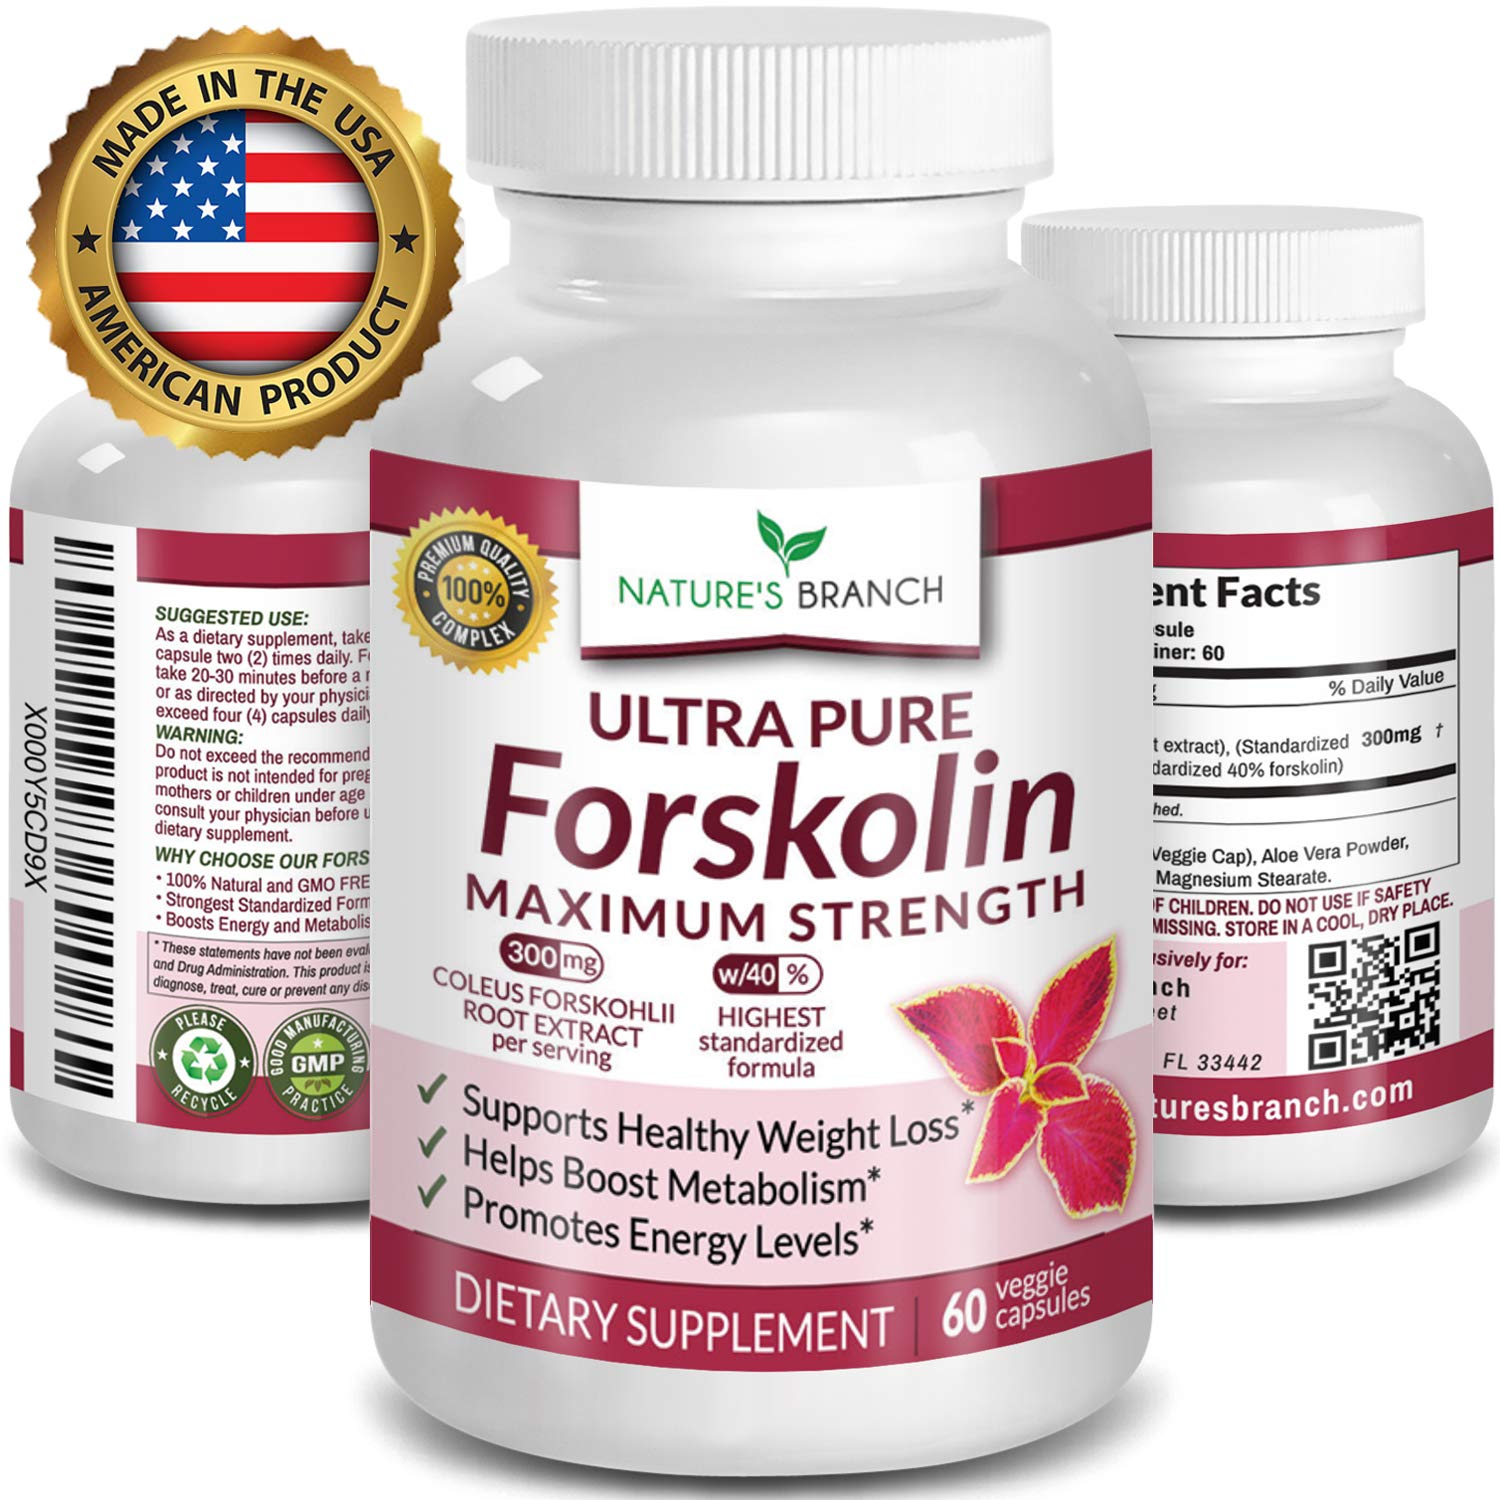 Premium 100% Ultra Pure Forskolin for Weight Loss Max Strength w/ 40% Standardized Coleus Forskohlii Root Extract Powder Belly Buster Supplement - Extreme Keto Advanced Boost Complex - 60 Diet Pills by Nature's Branch